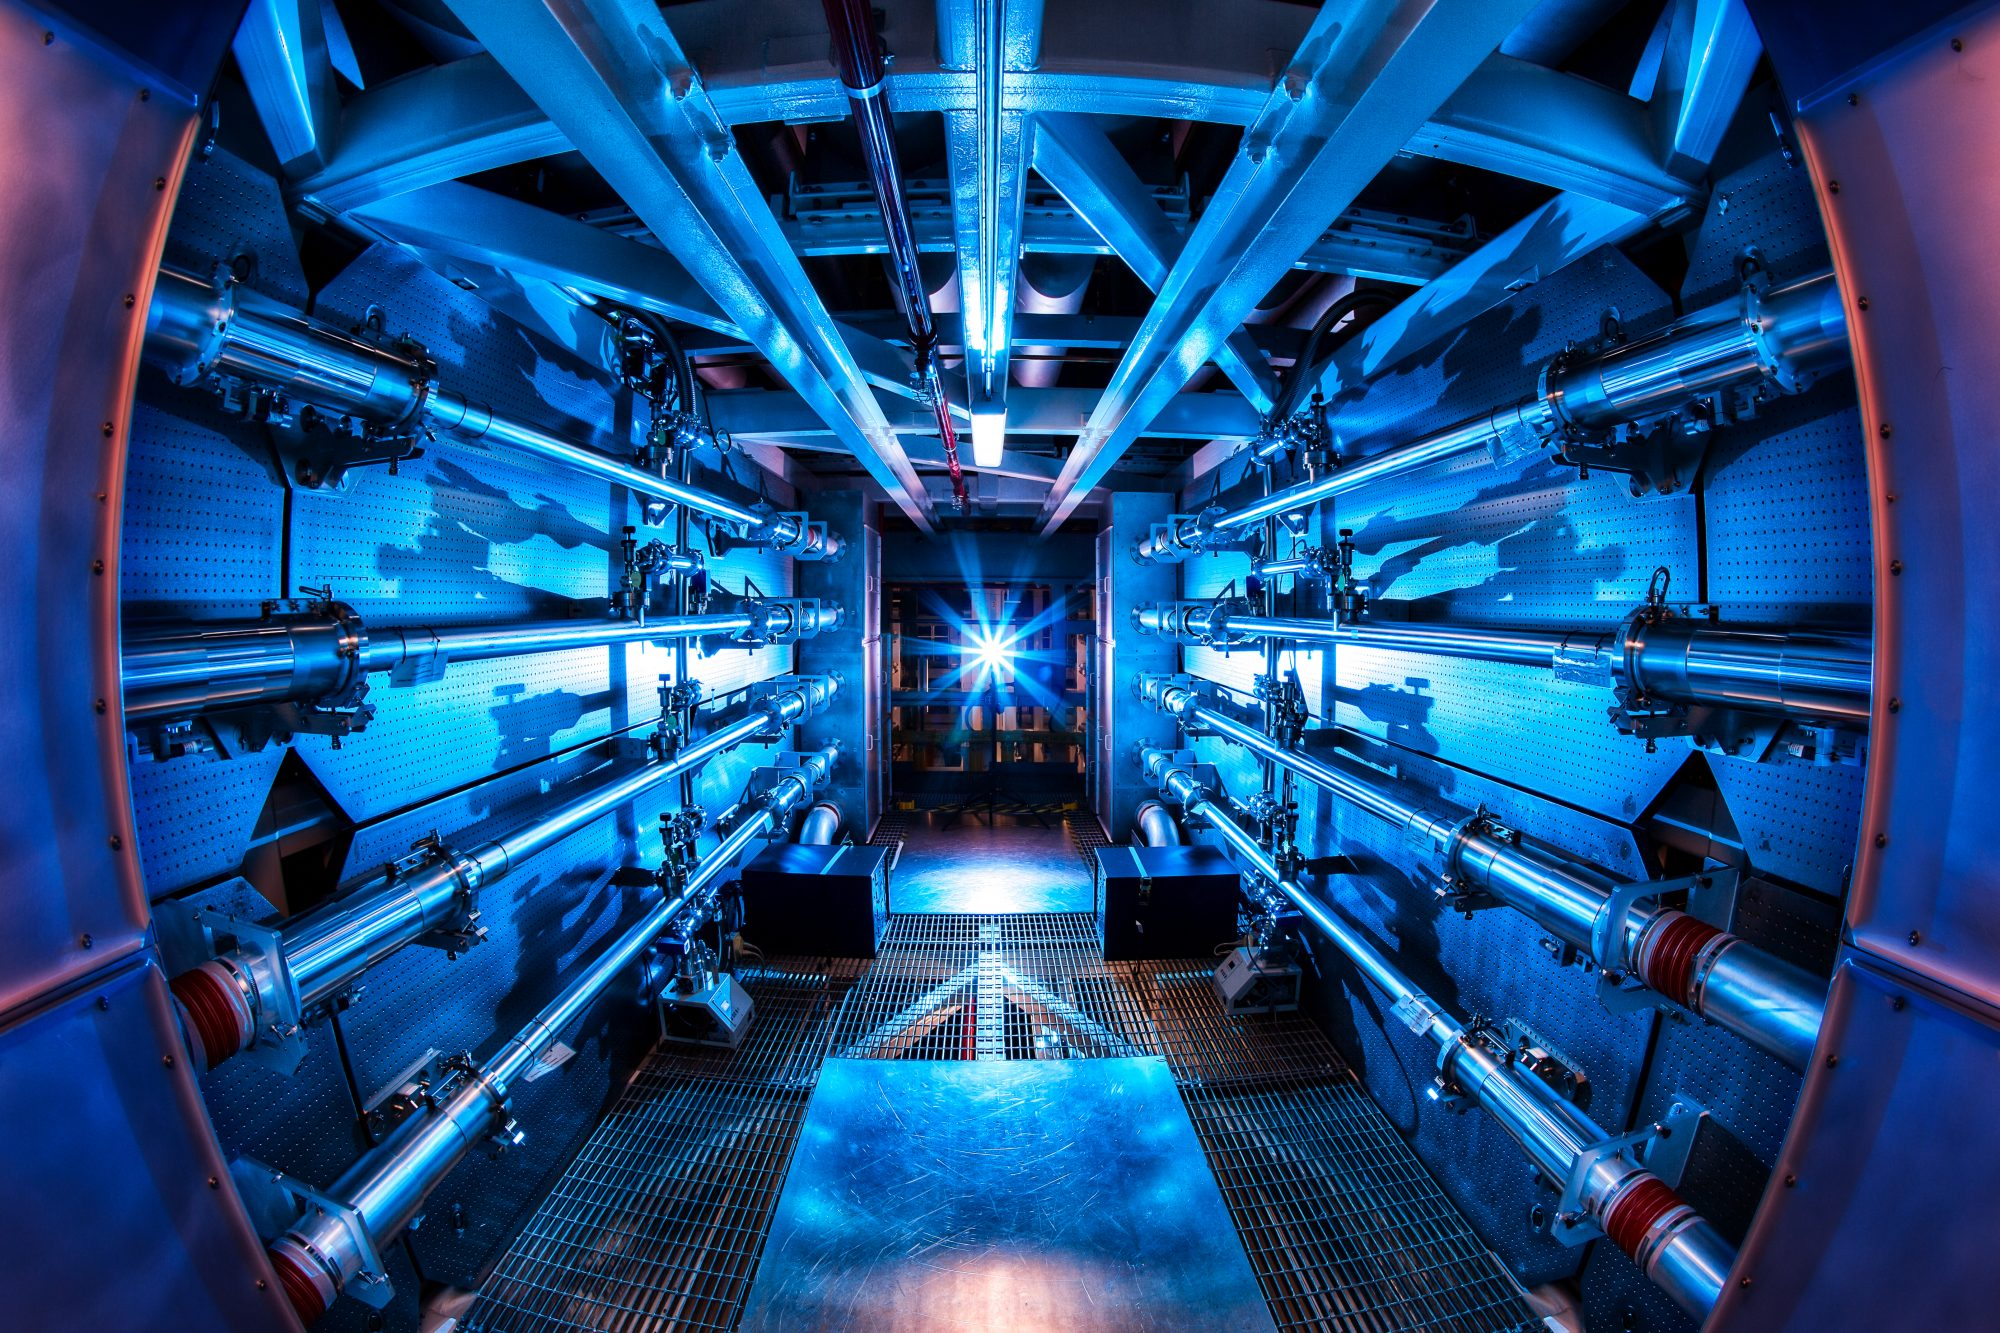 A cool look at something called a preamplifier, which is part of the National Ignition Facility's effort at creating a self-sustaining fusion reaction.